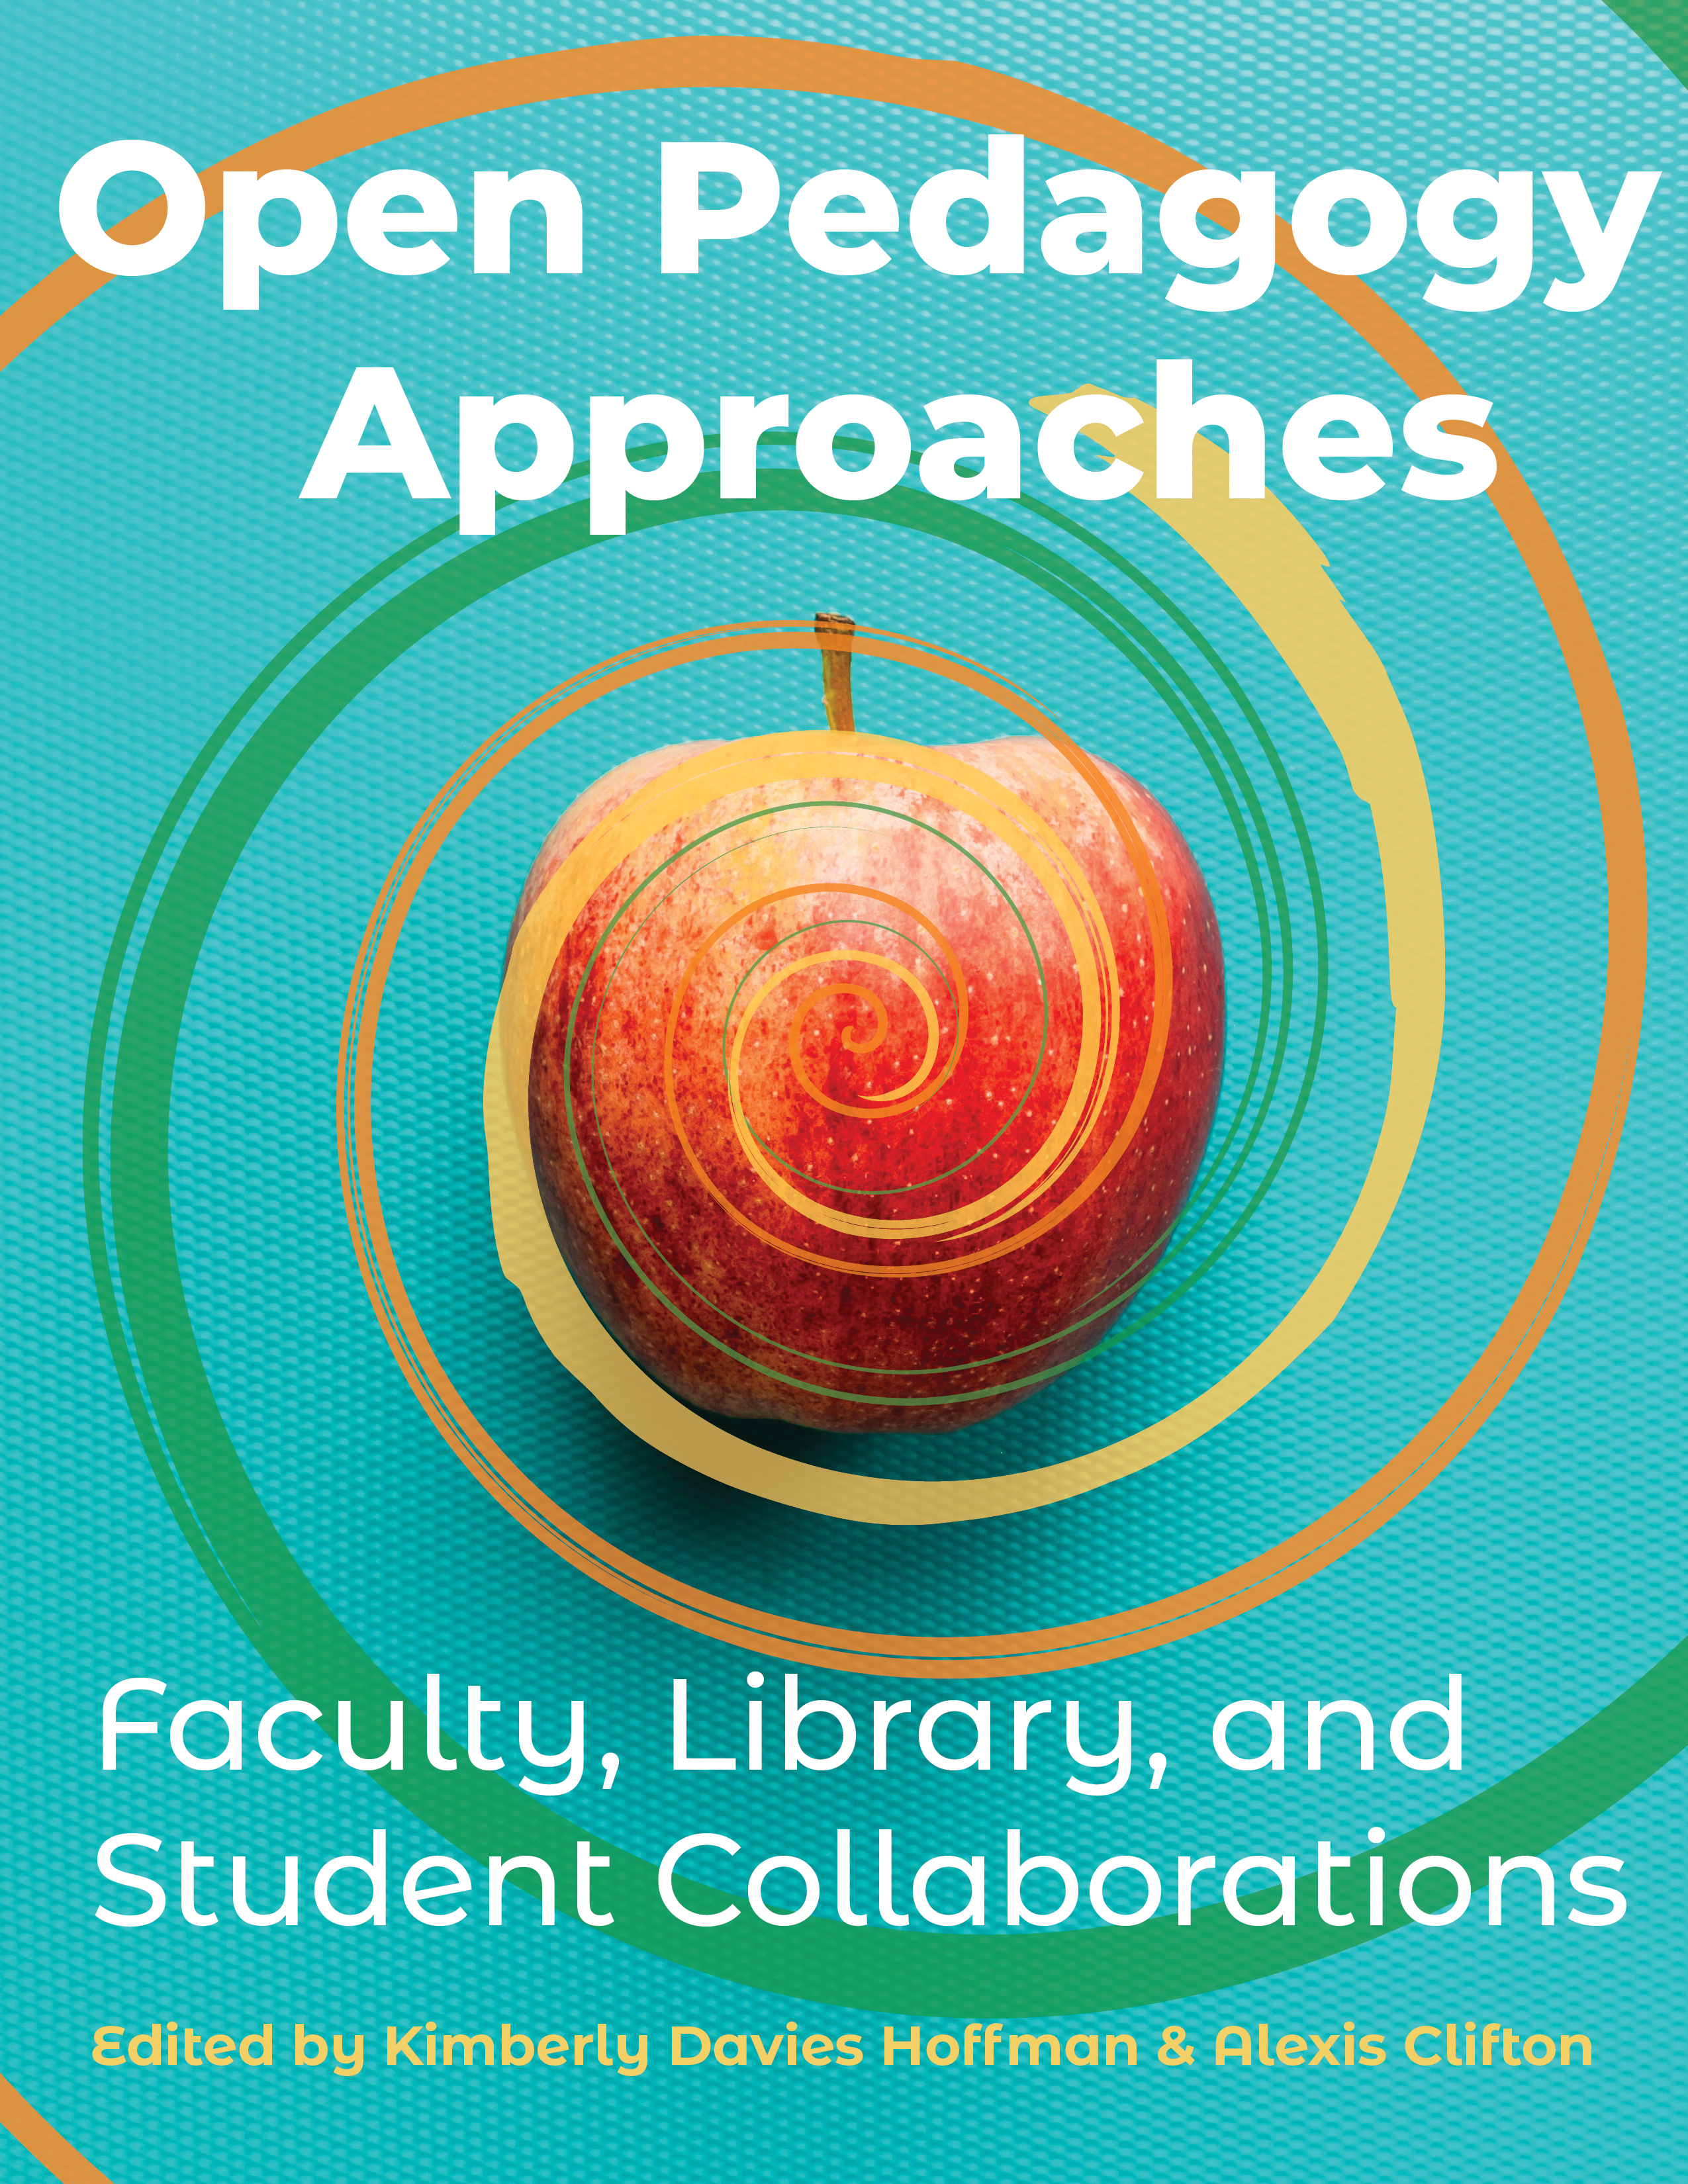 Cover image for Open Pedagogy Approaches